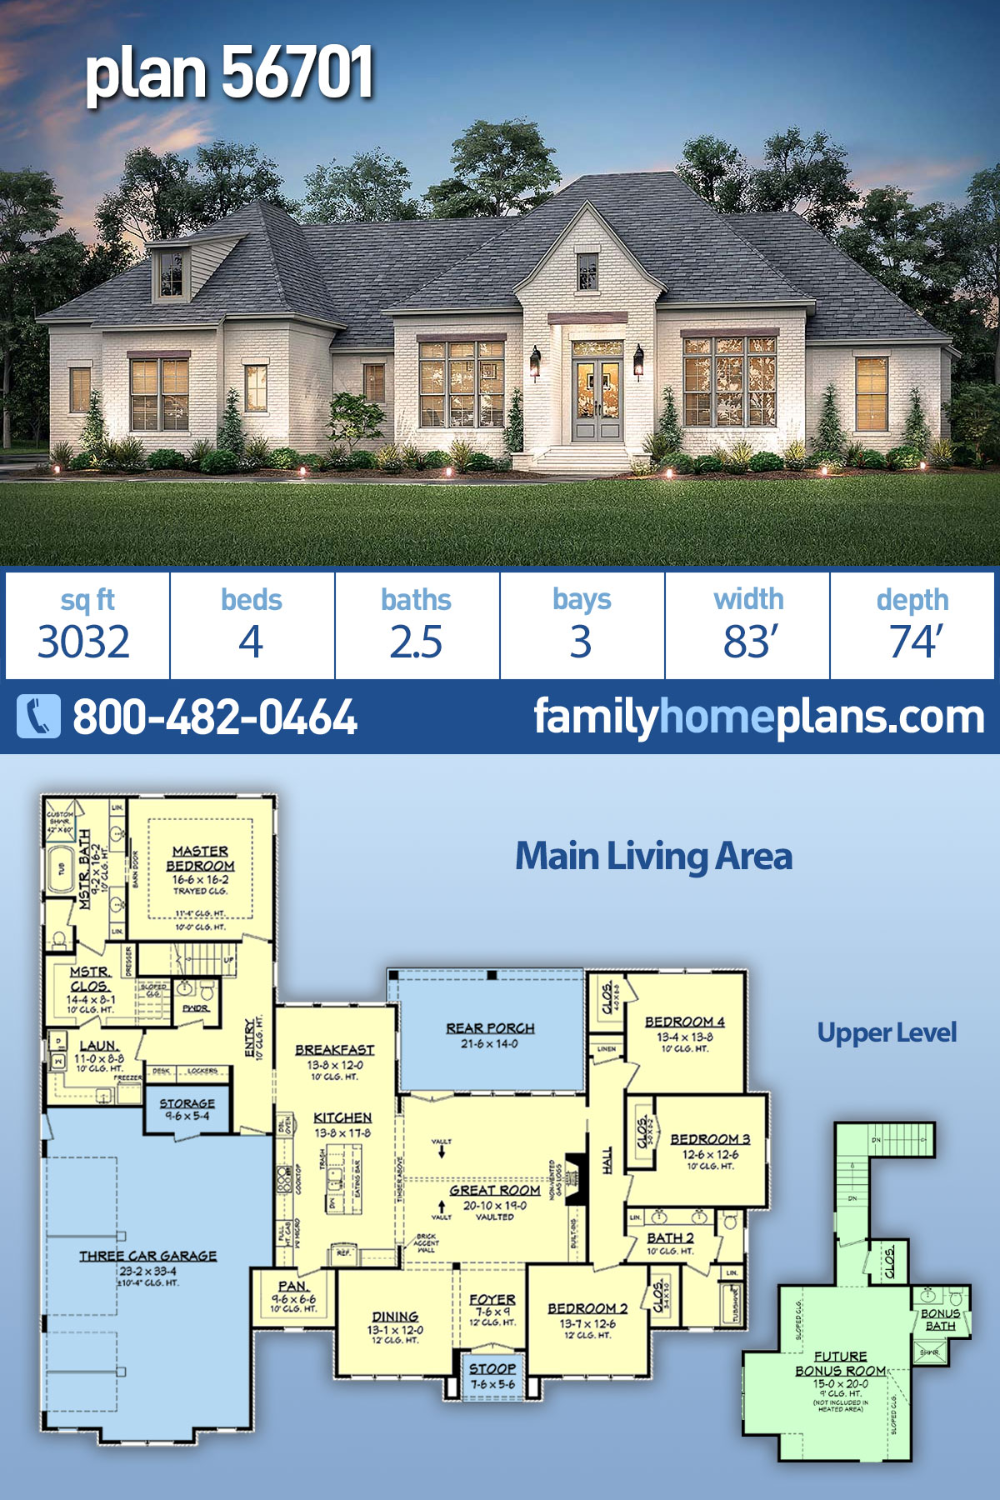 Photo of French Country Style House Plan 56701 with 4 Bed, 3 Bath, 3 Car Garage